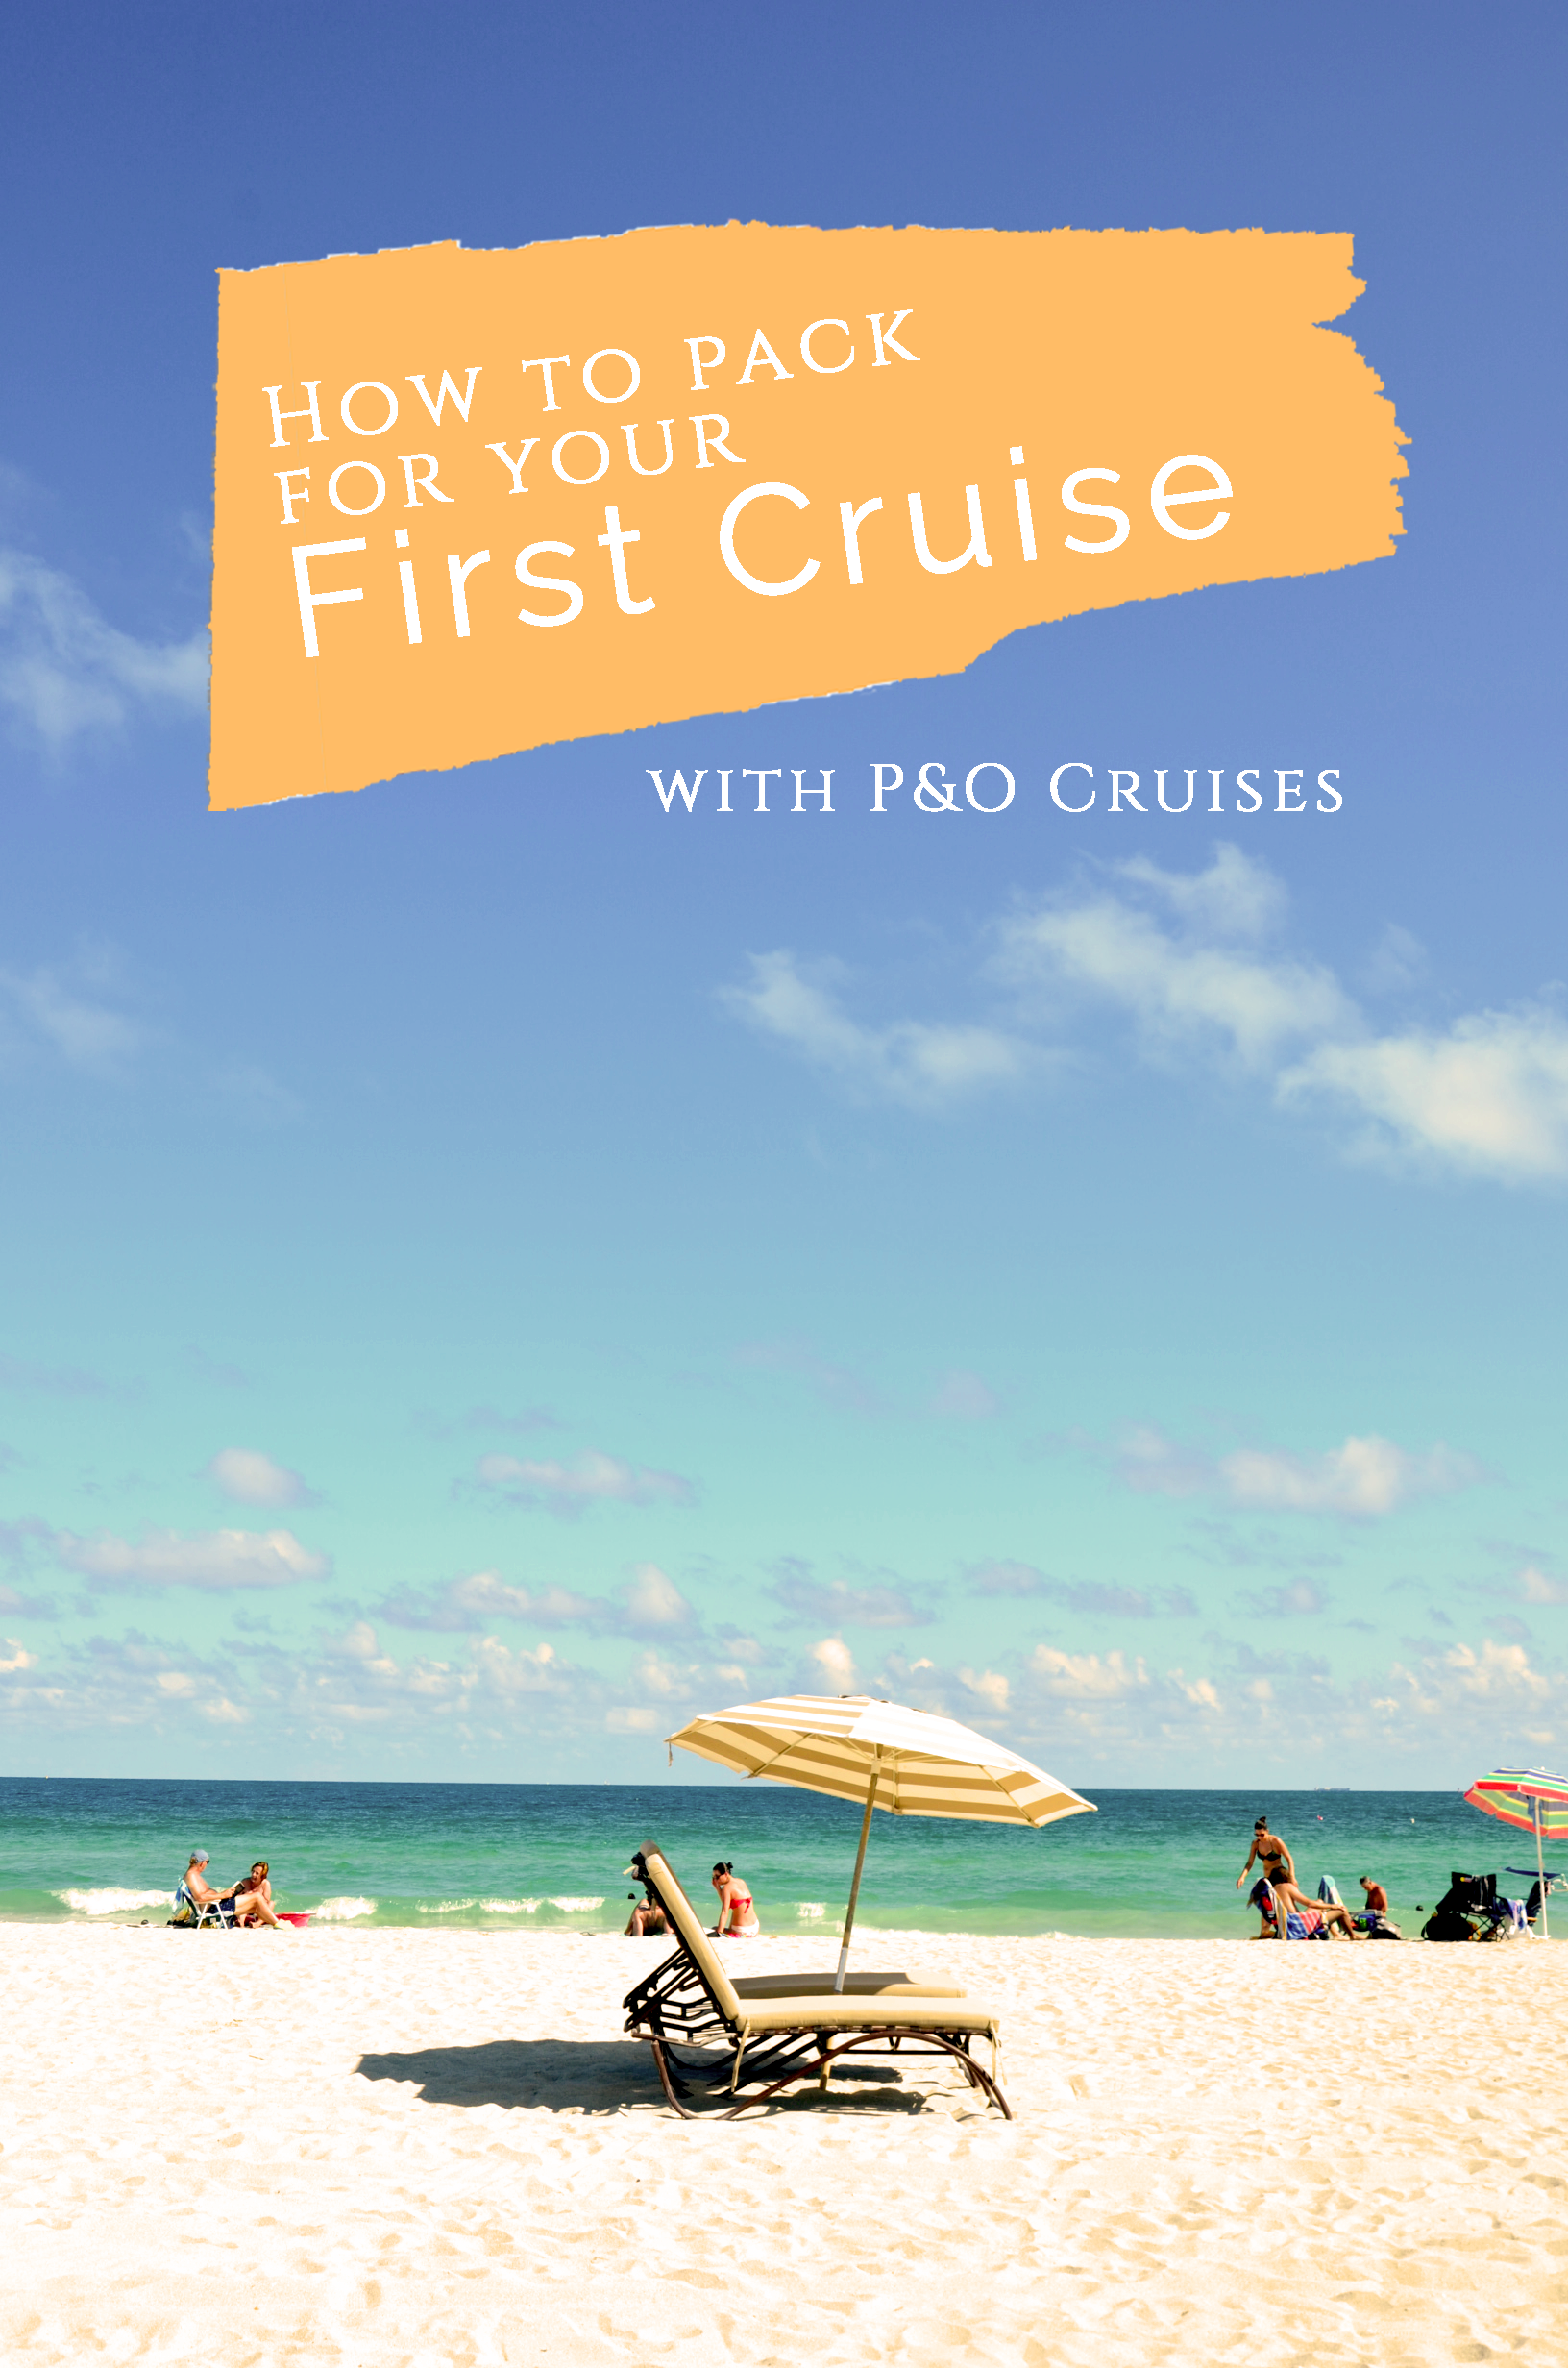 What to pack on your first cruise with P&O